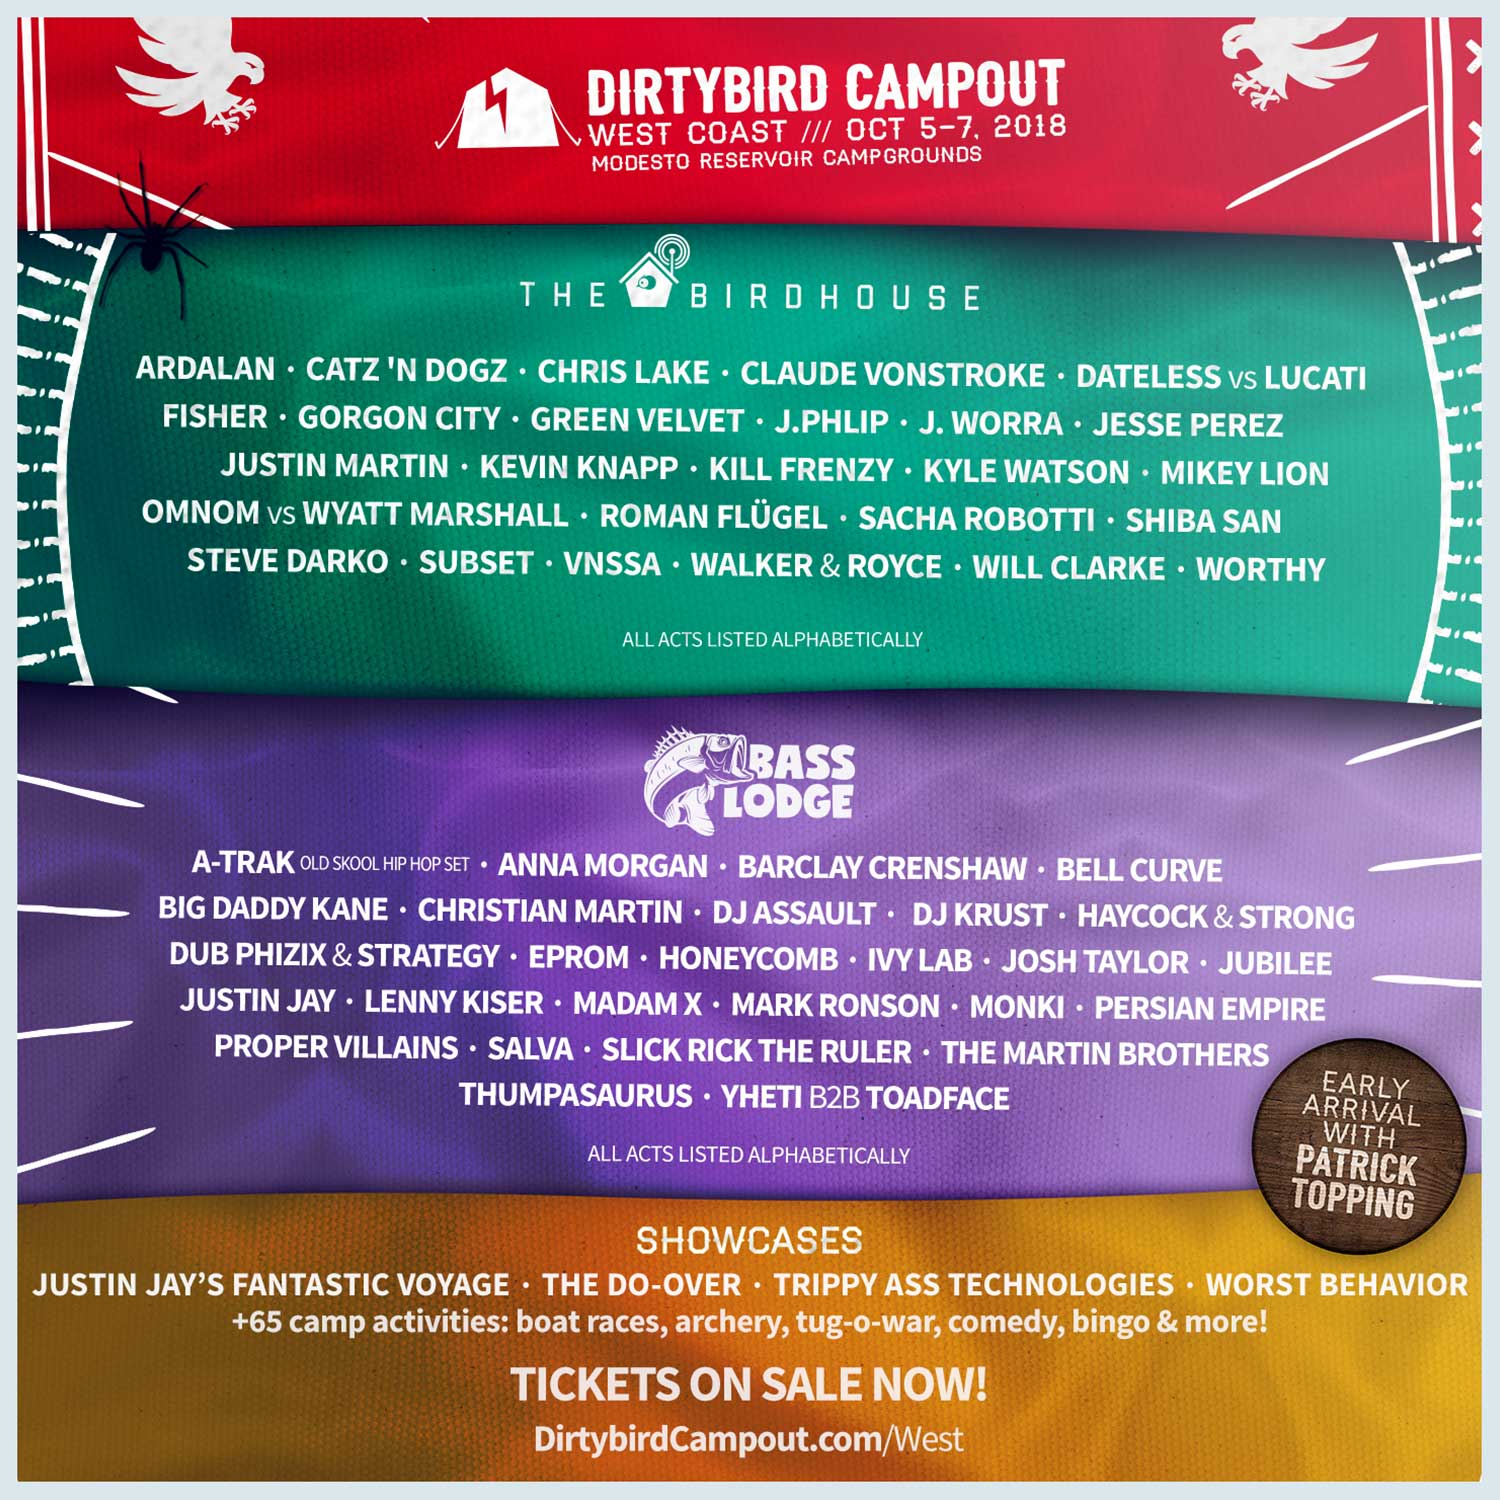 10 Anticipated Sets At Dirtybird Campout 2018